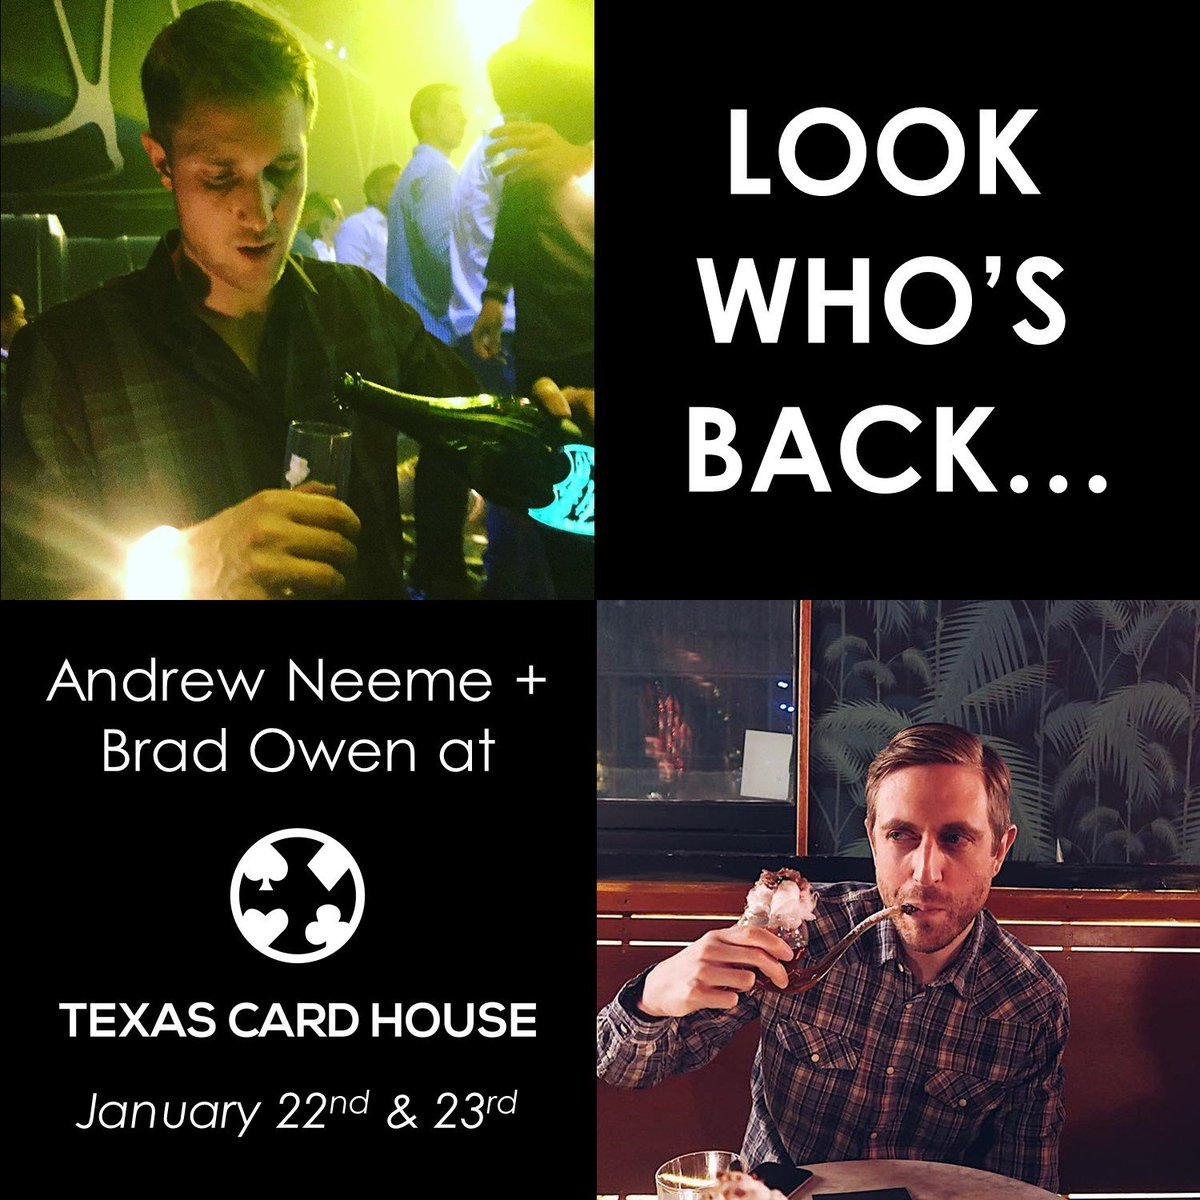 @andrewneeme + @TheBradOwen TUESDAY at @texascardhouse for a 5/5 Meet Up Game starting at 6p! Last time they were here we had 6+ tables of 5/5 going all night long!  https://tch.cards/55mug   #poker #austin #texas #texasholdem #pokertournament